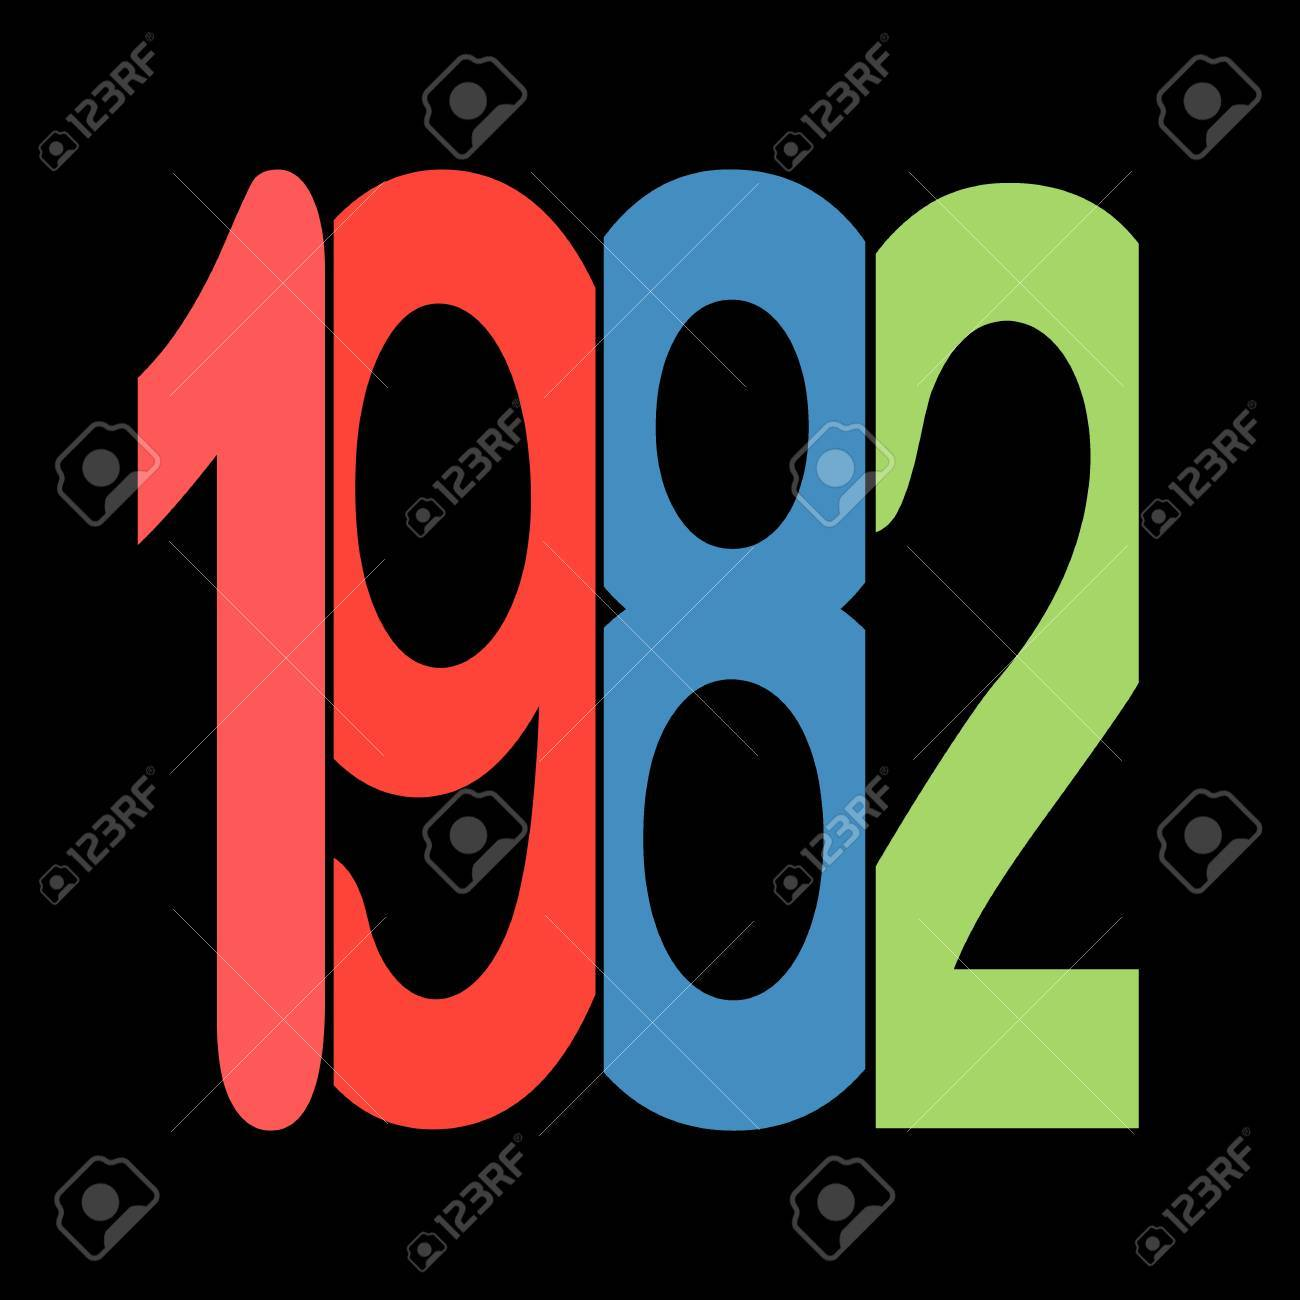 Year 1982 Stock Photo, Picture And Royalty Free Image. Image 85546722.